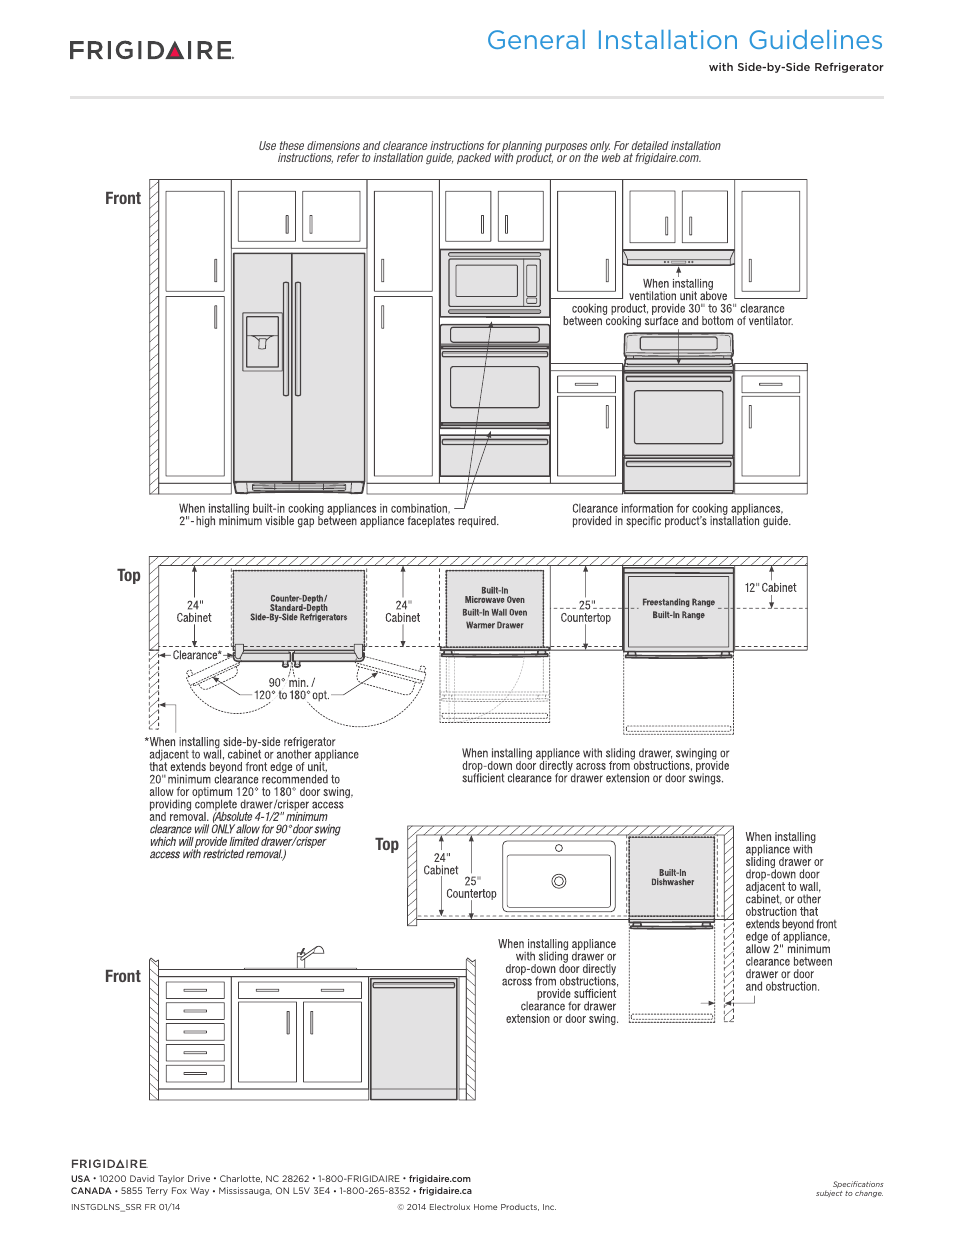 General installation guidelines, Front top front